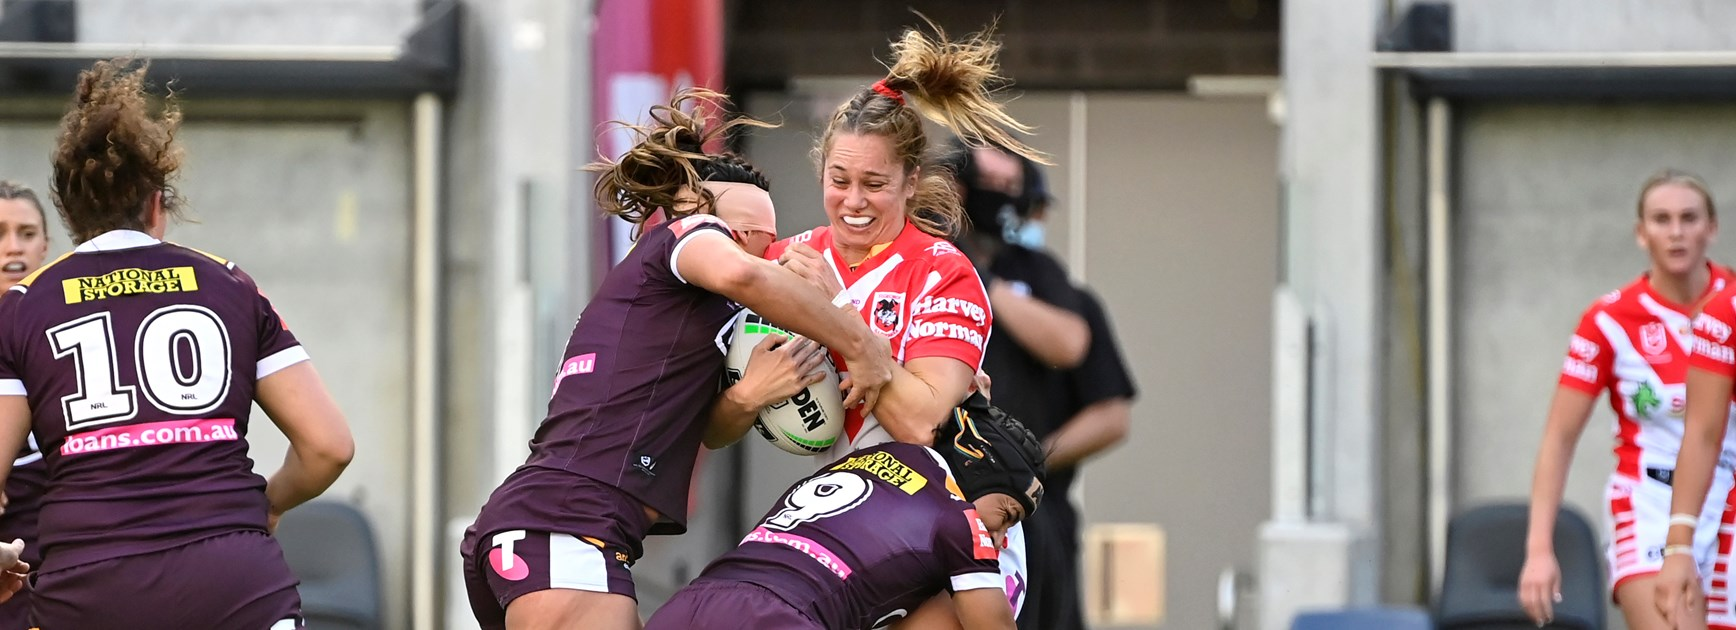 NRLW now a standalone October event after kick-off delay